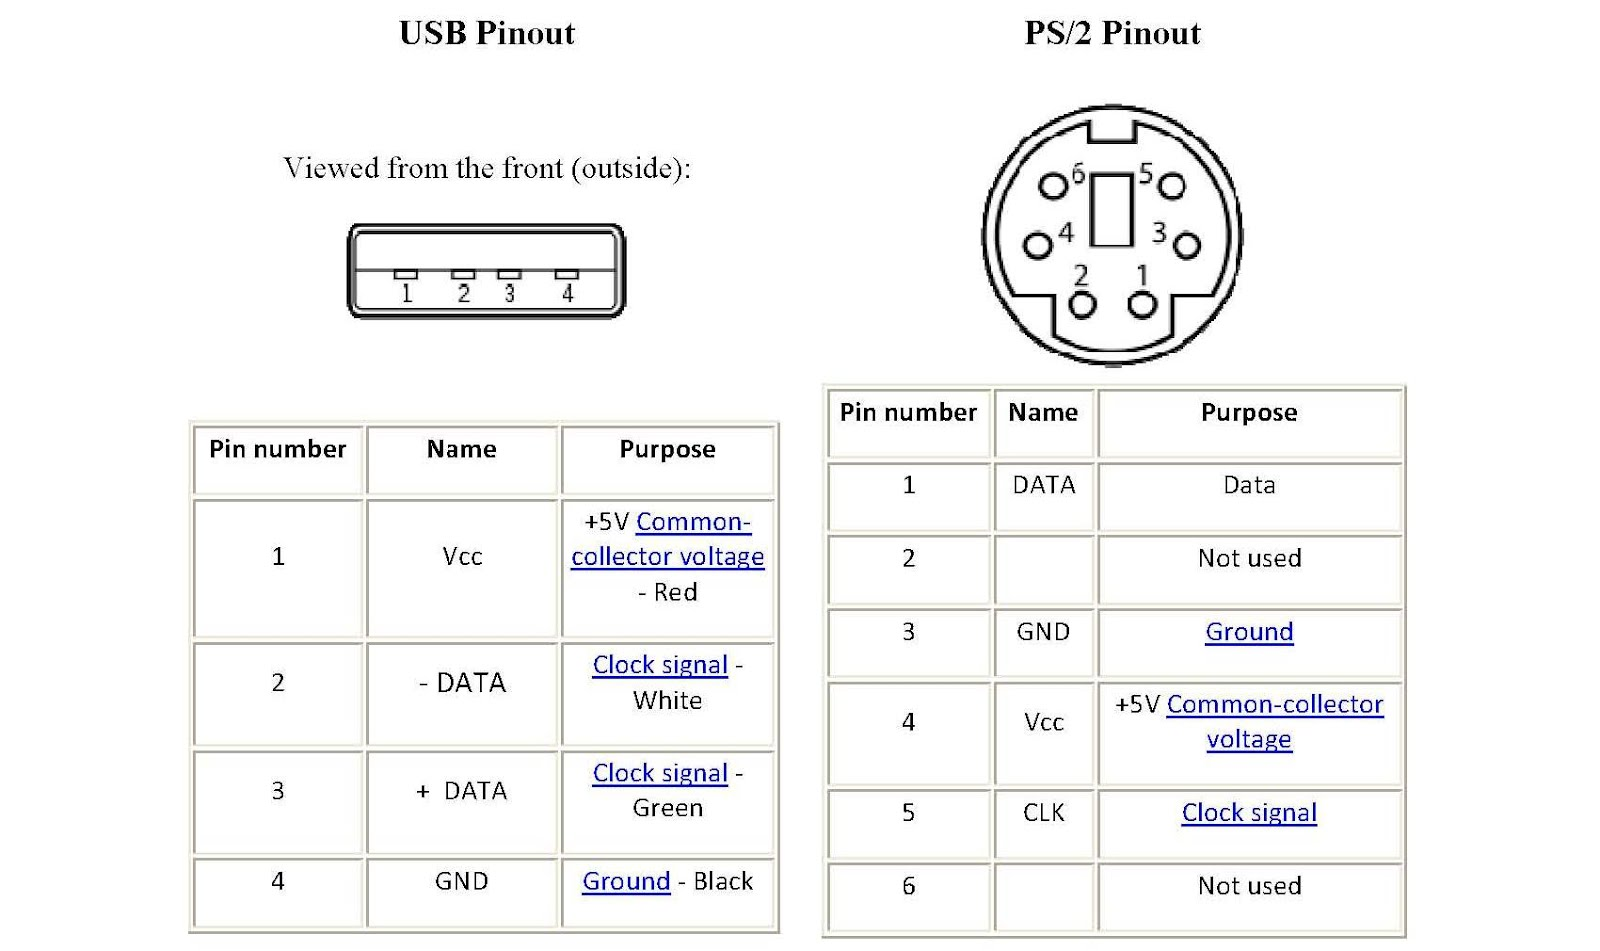 usb port wiring-diagram, motherboard wiring-diagram, ps2 pinout diagram, usb keyboard wiring-diagram, ps2 to usb circuit, on usb to ps2 converter wiring diagram